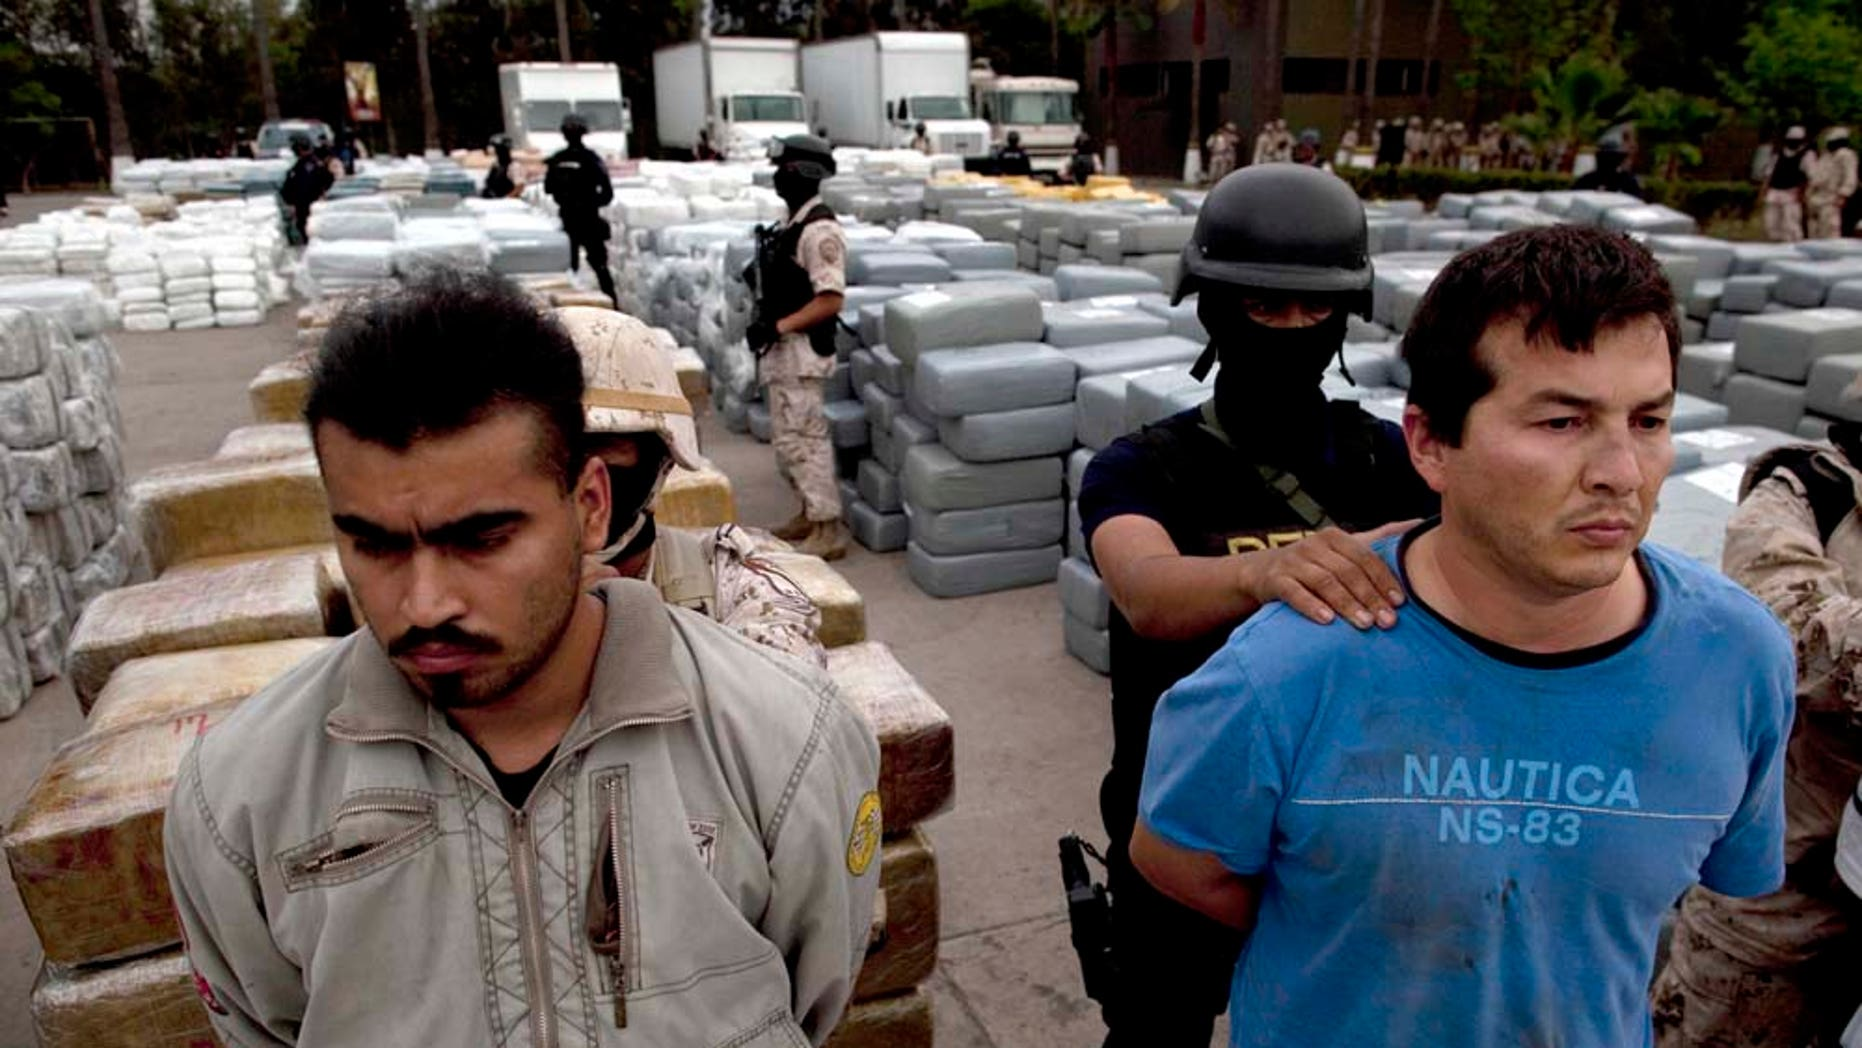 The drug cartels have set their sights on recruiting young people in Texas.